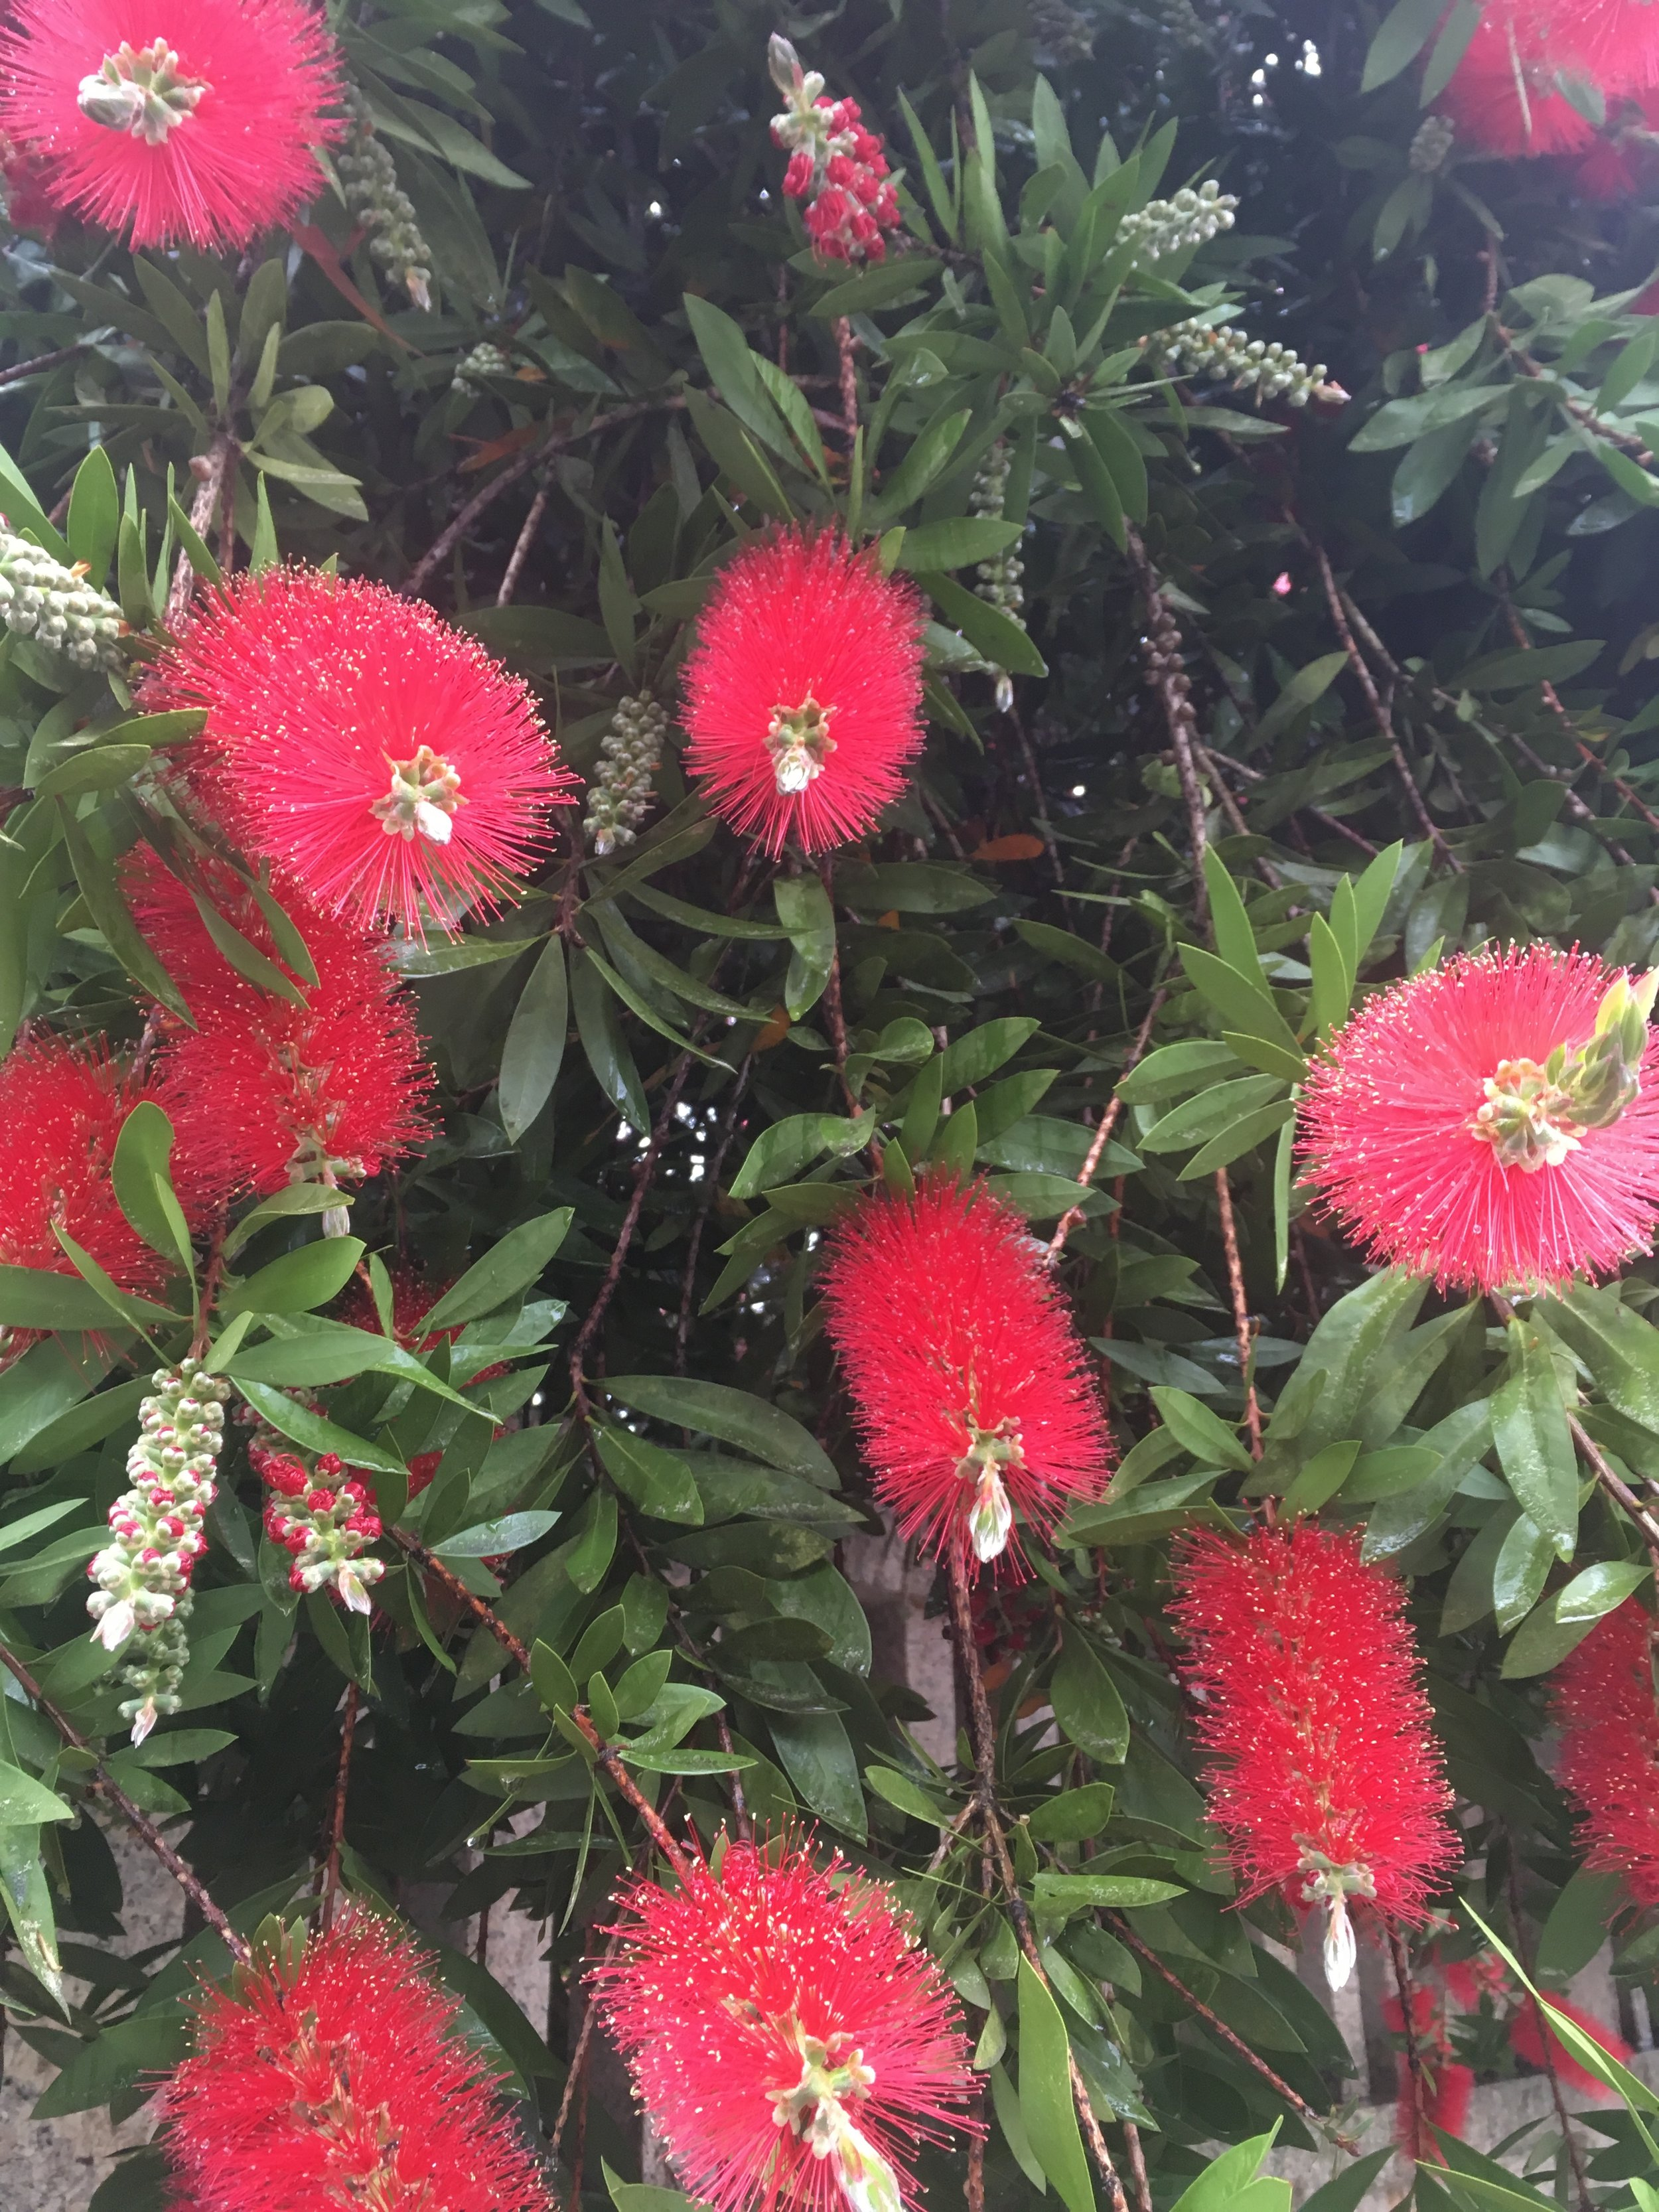 The beautiful bottlebrush flowers that we absolutely loved!